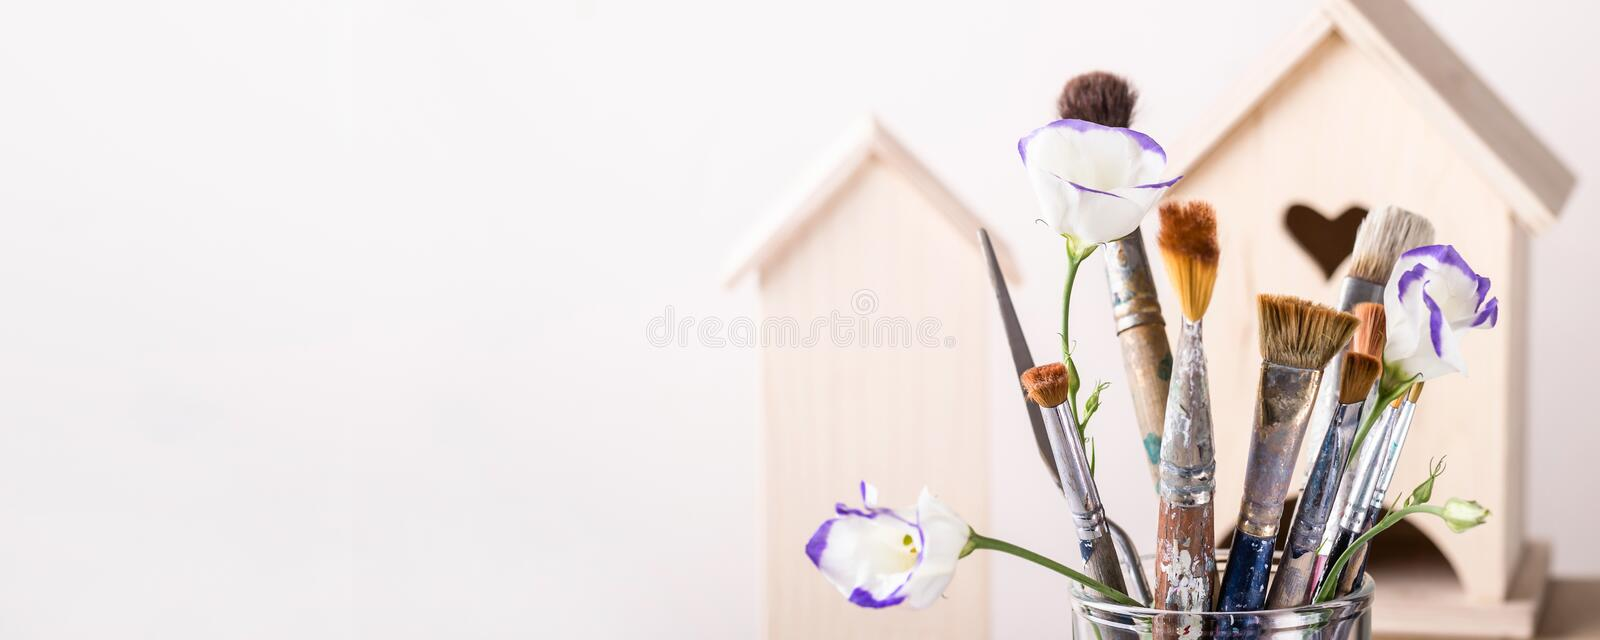 Art Brush Set and wooden house for decoration on white background. Banner format.  stock photo